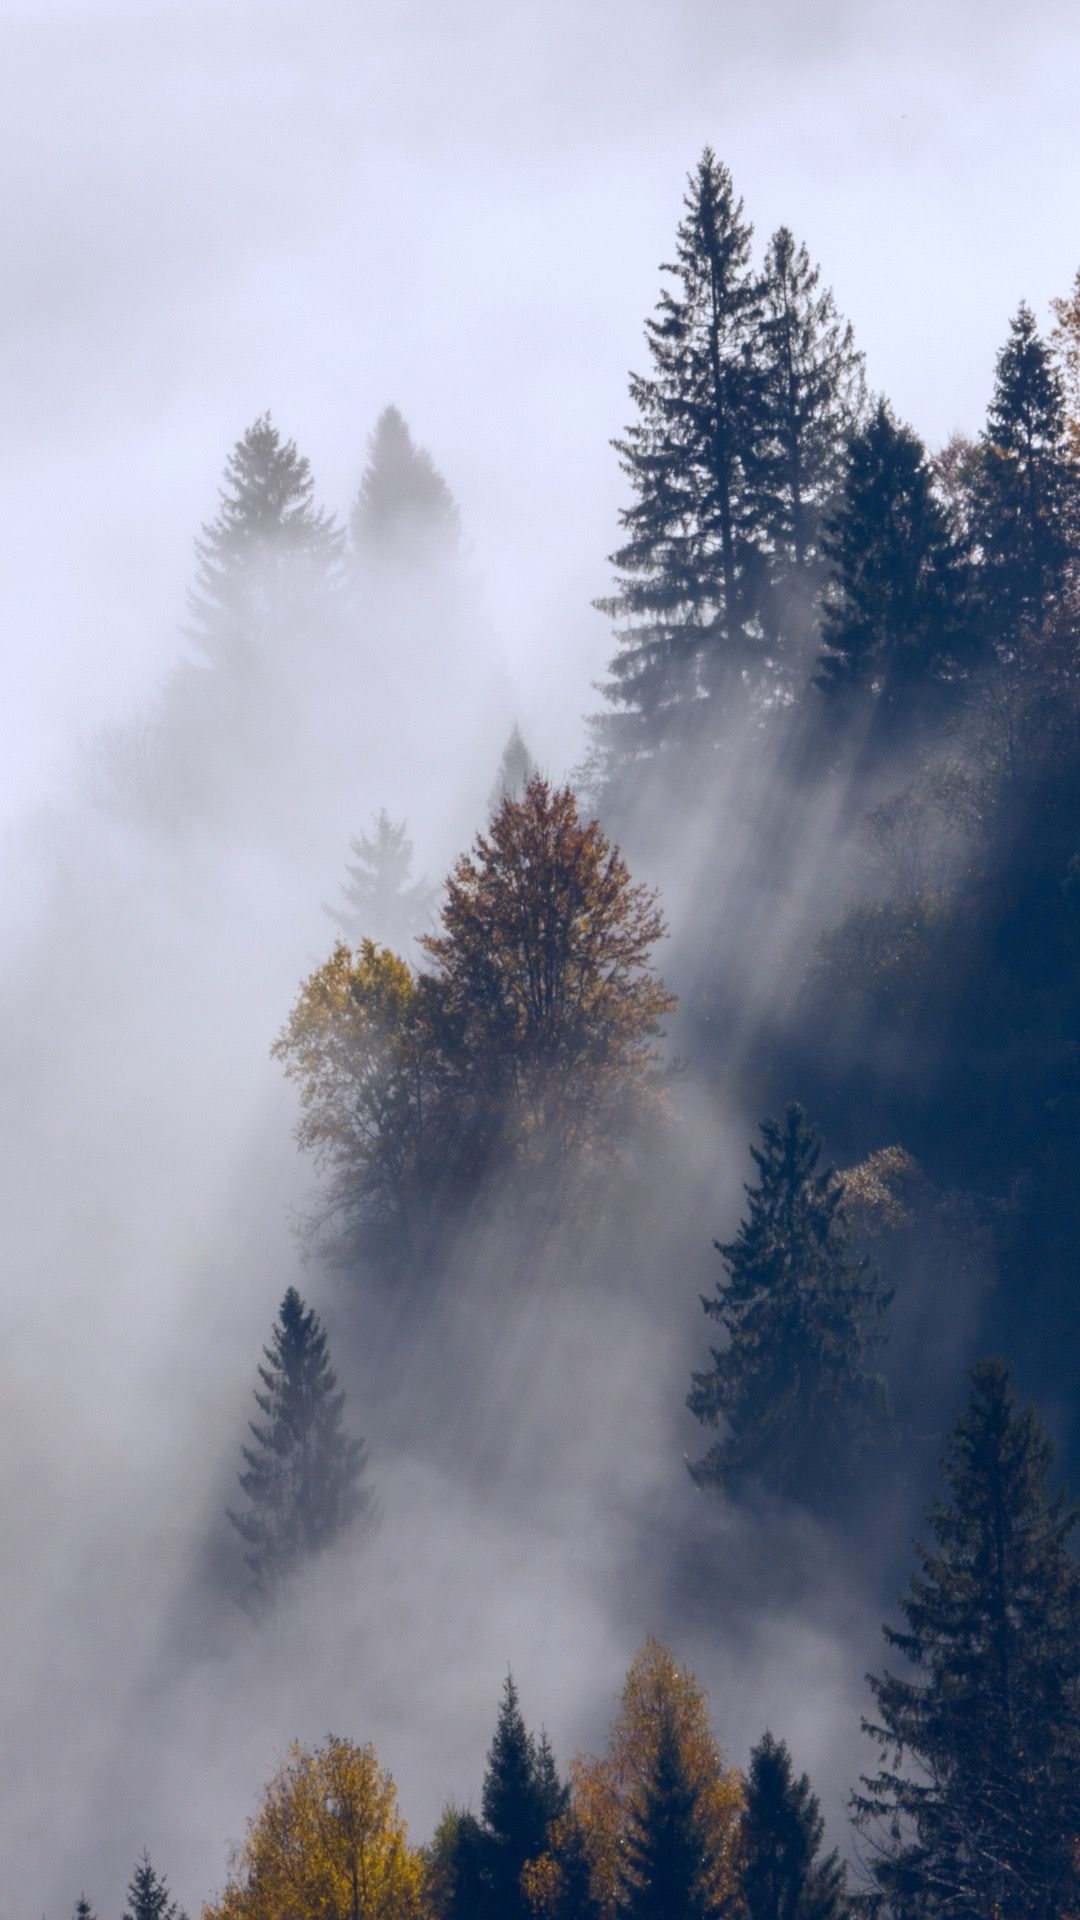 Aesthetic Foggy Forest Wallpaper : aesthetic, foggy, forest, wallpaper, Foggy, Forest, Wallpaper, Wallpaper,, Nature, Pictures,